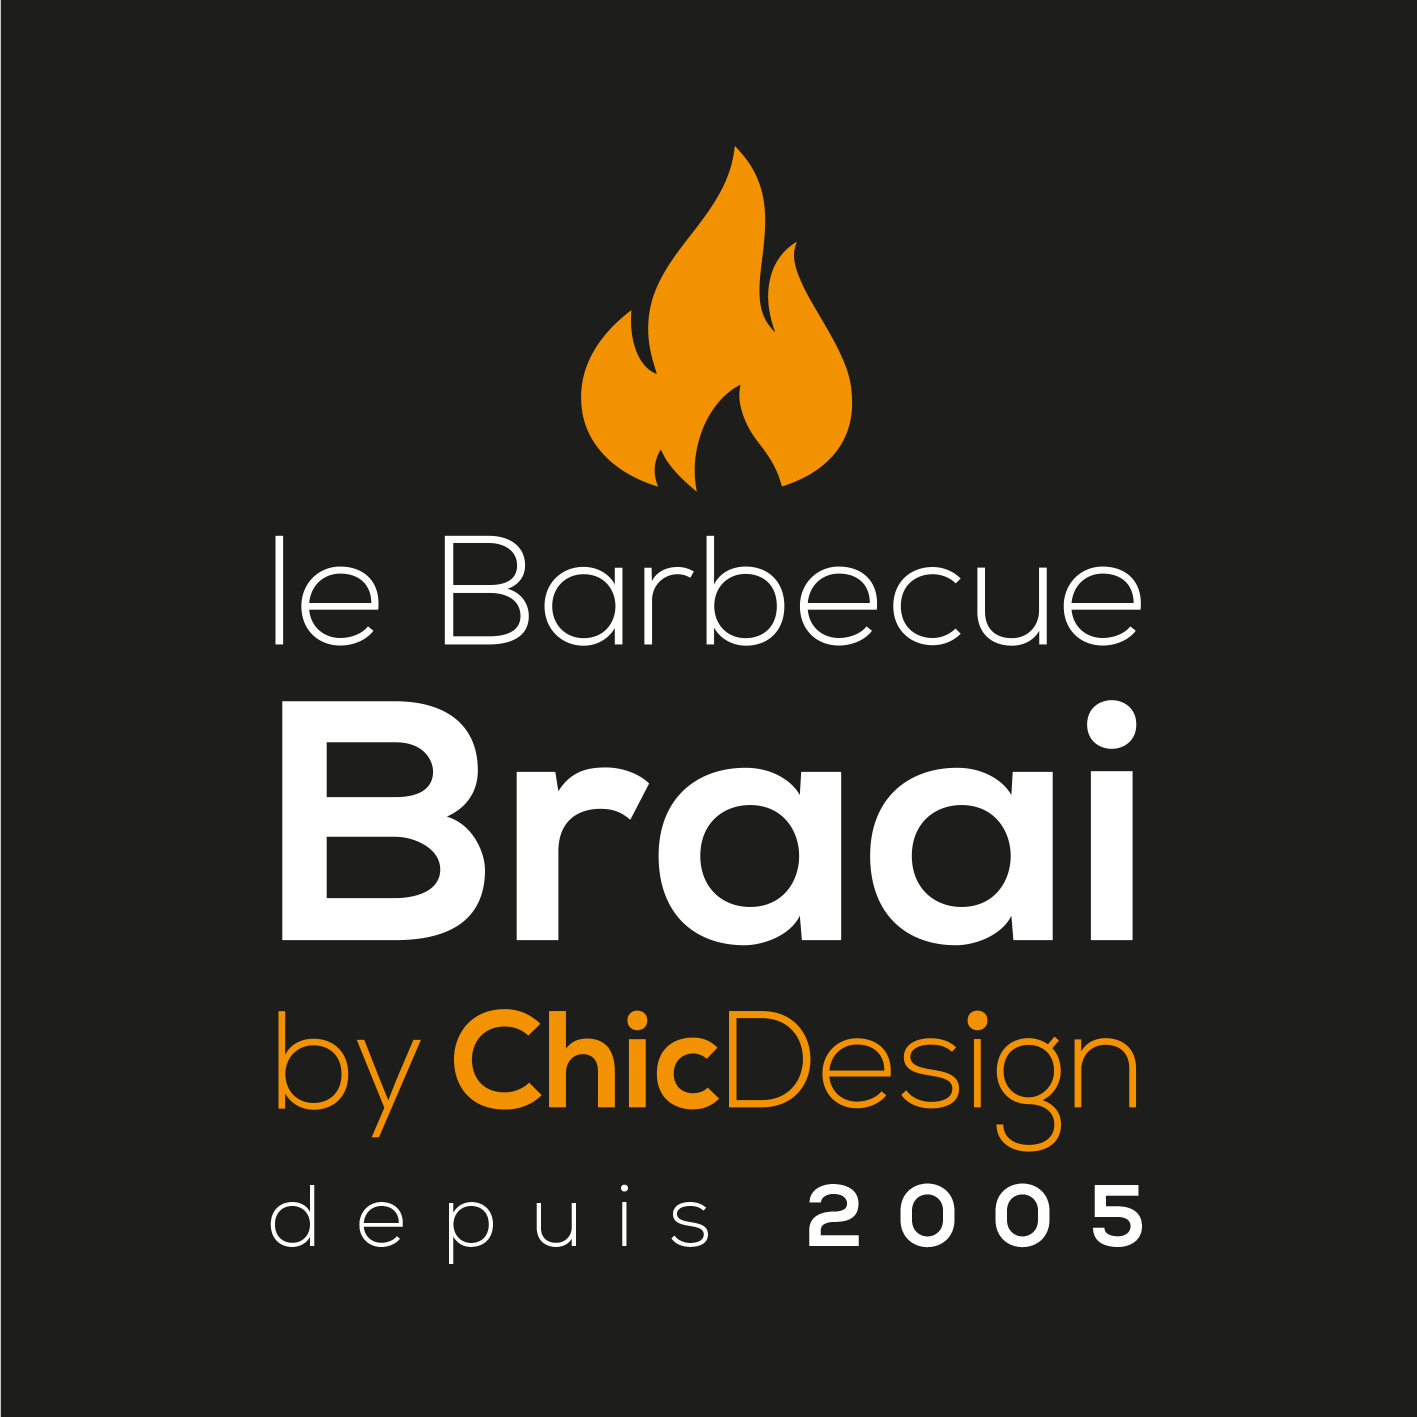 Logo_ChicDesign_BBQ_noir_2005